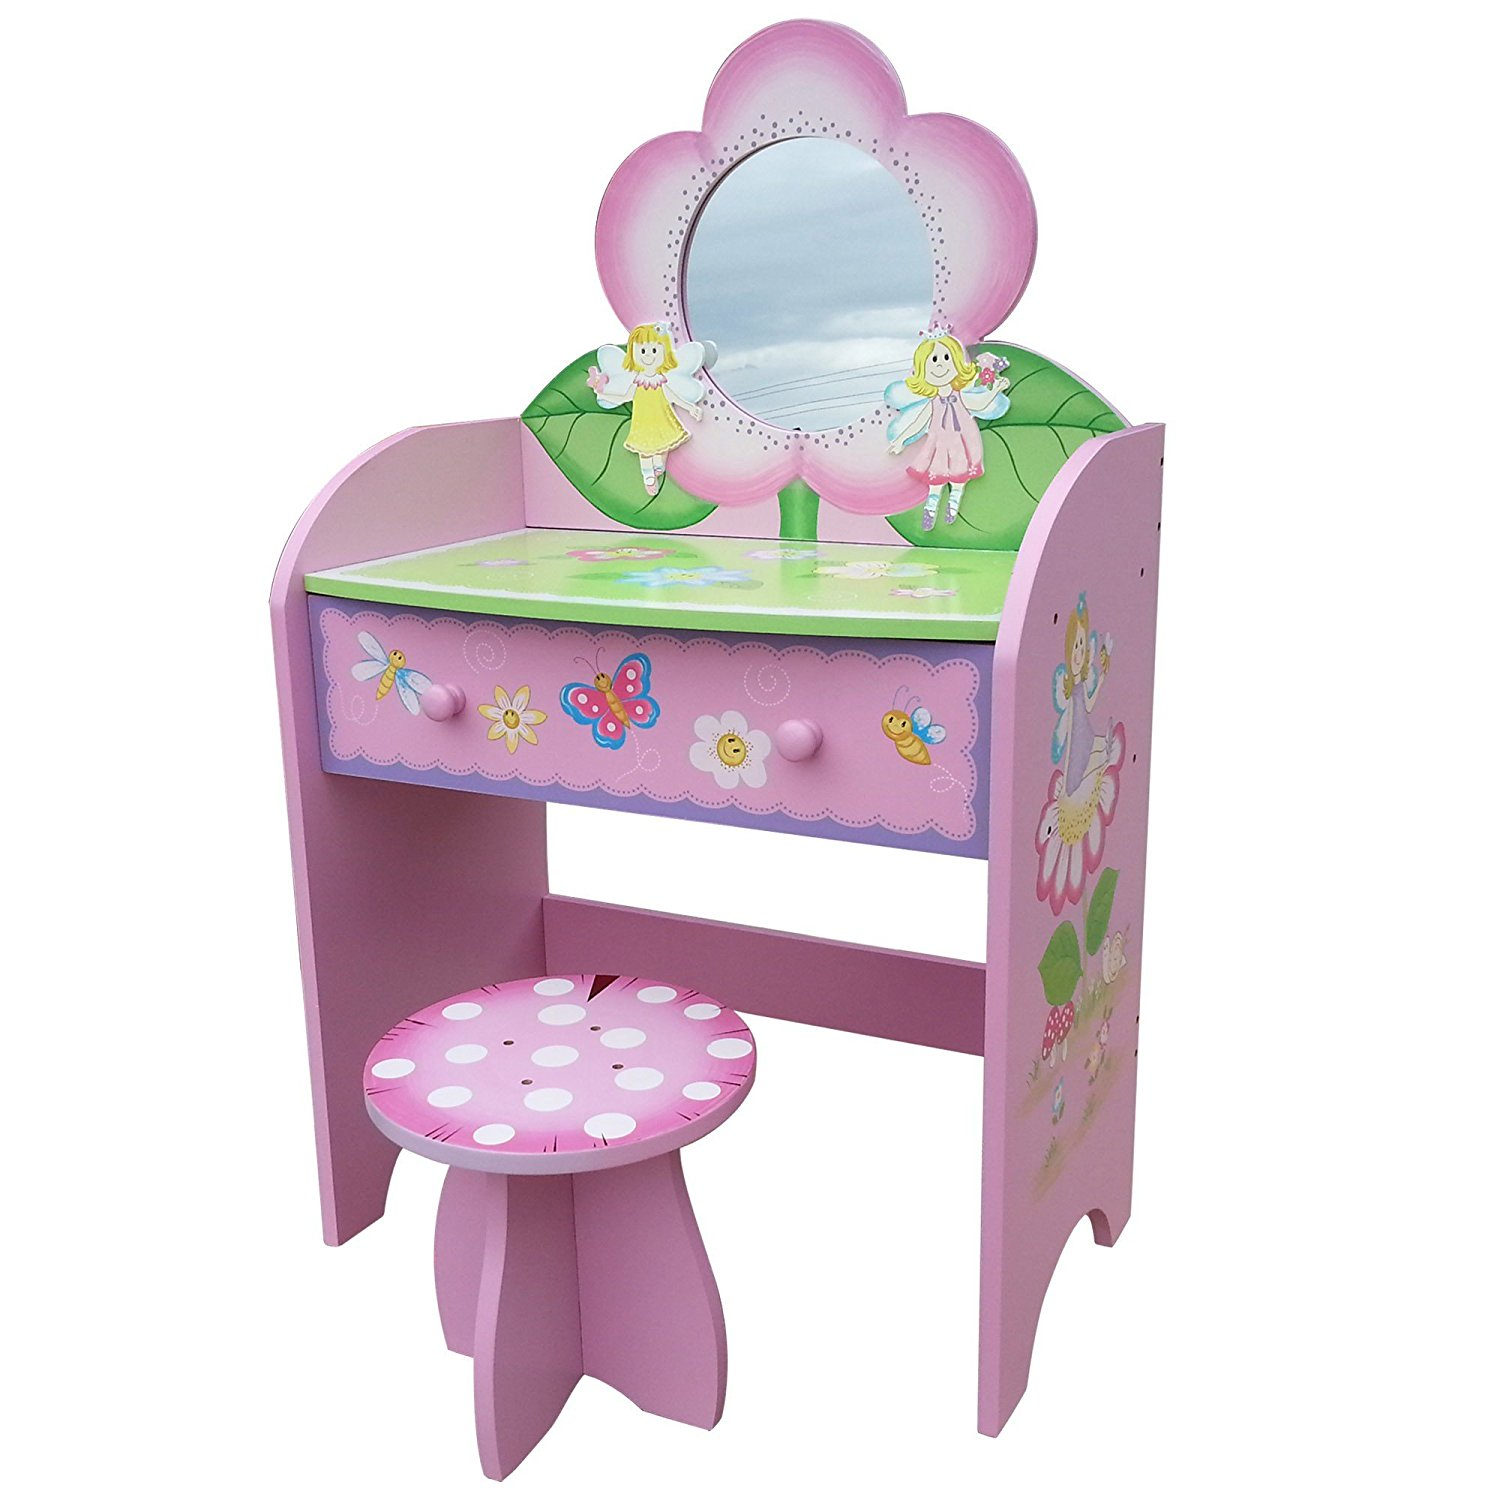 half off 483f5 cbc6e Details about Childrens Dressing Table Stool Wooden Vanity Desk Fairy  Bedroom Furniture